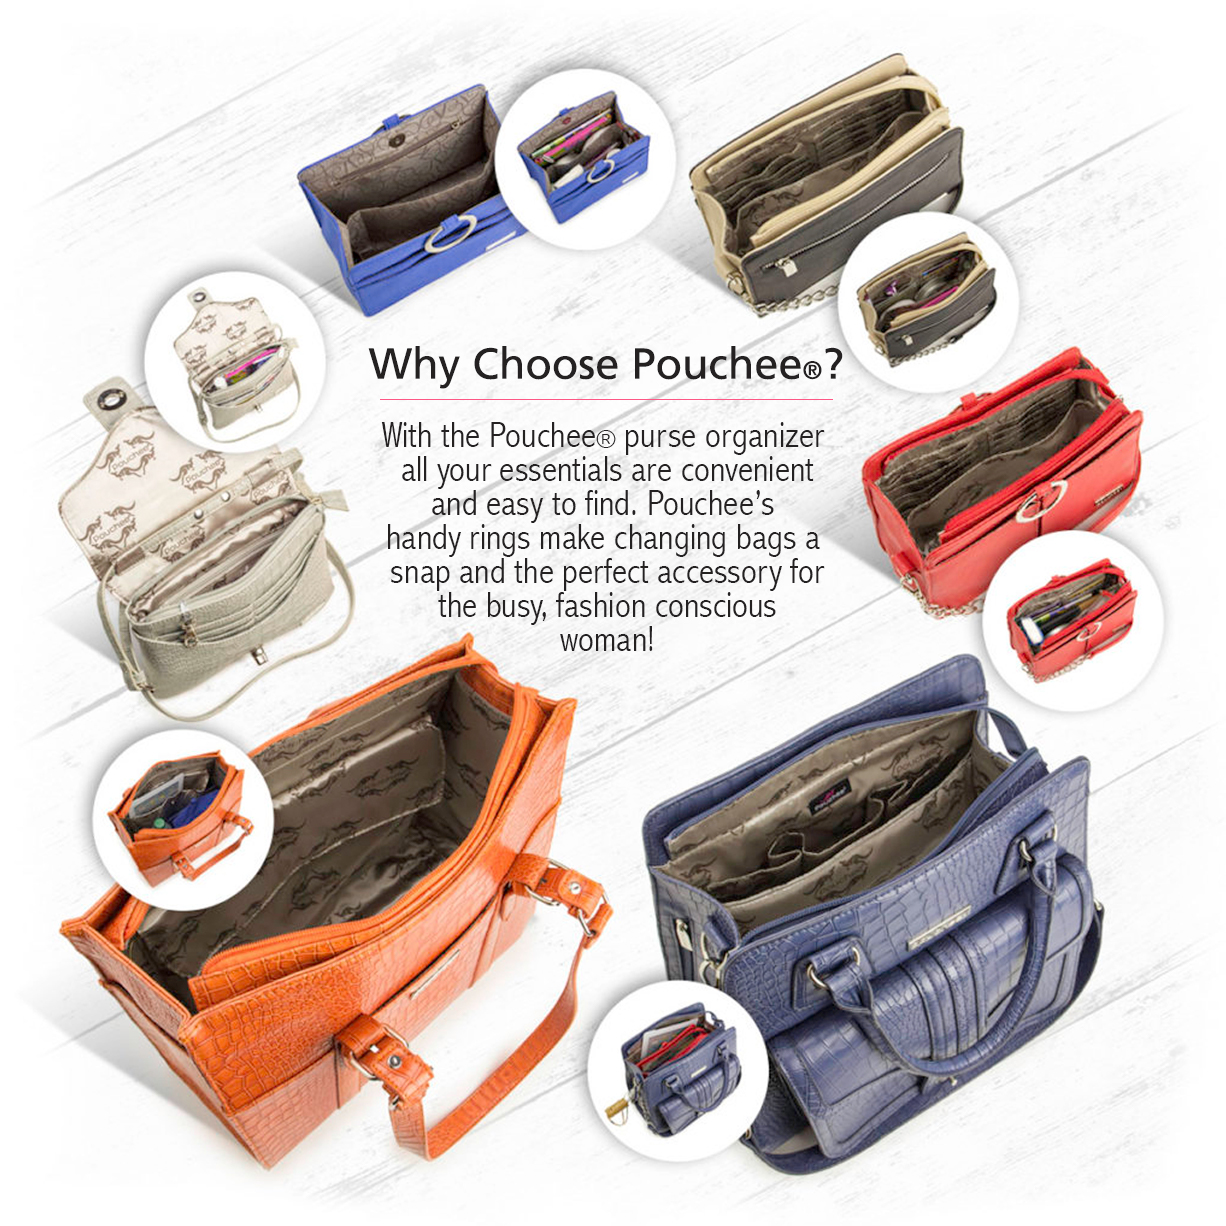 39109f229 Pouchee - Shop Purses and Purse Organizers